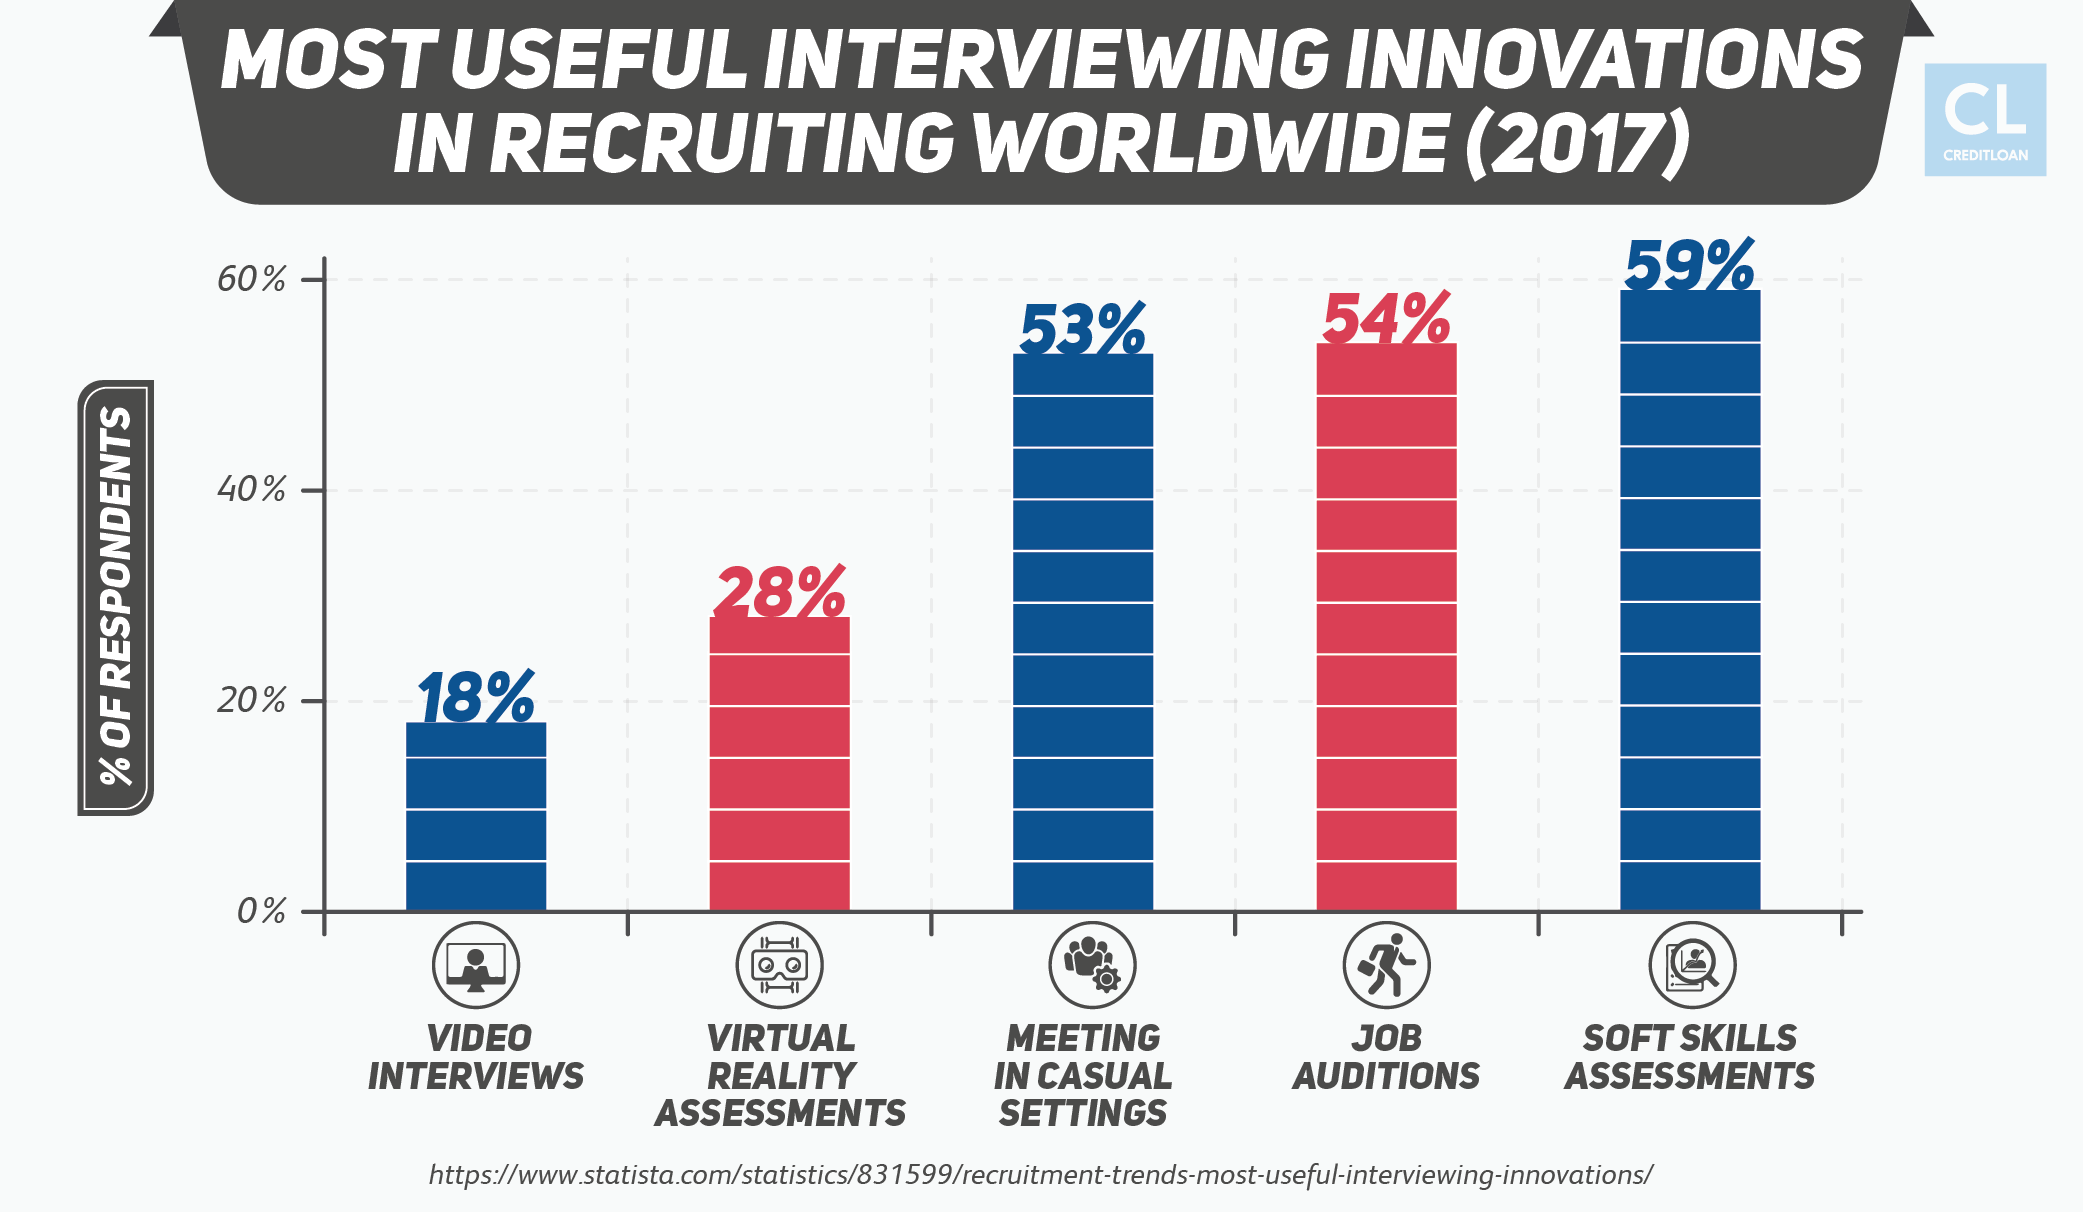 Most Useful Interviewing Innovations in Recruiting Worldwide